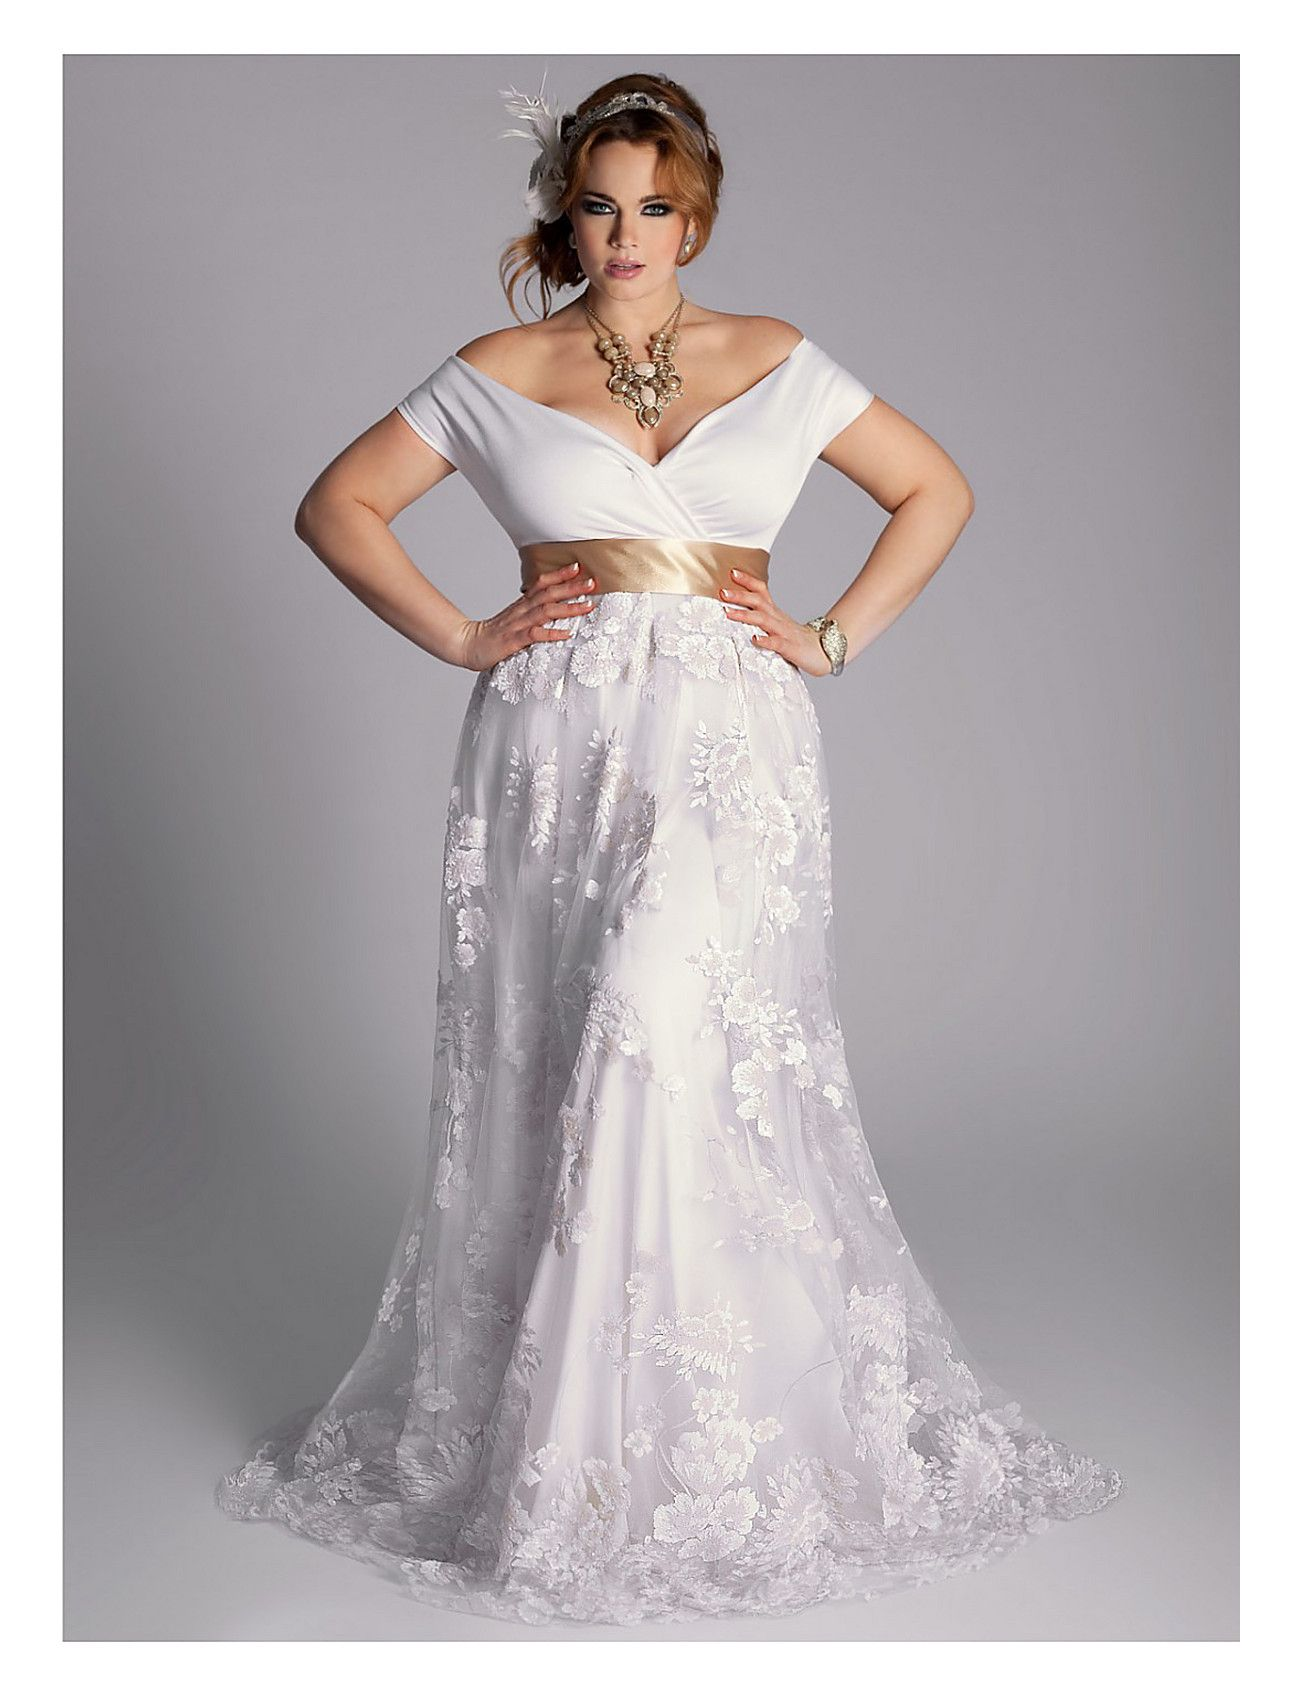 This actually is a really cute wedding dress not my first choice